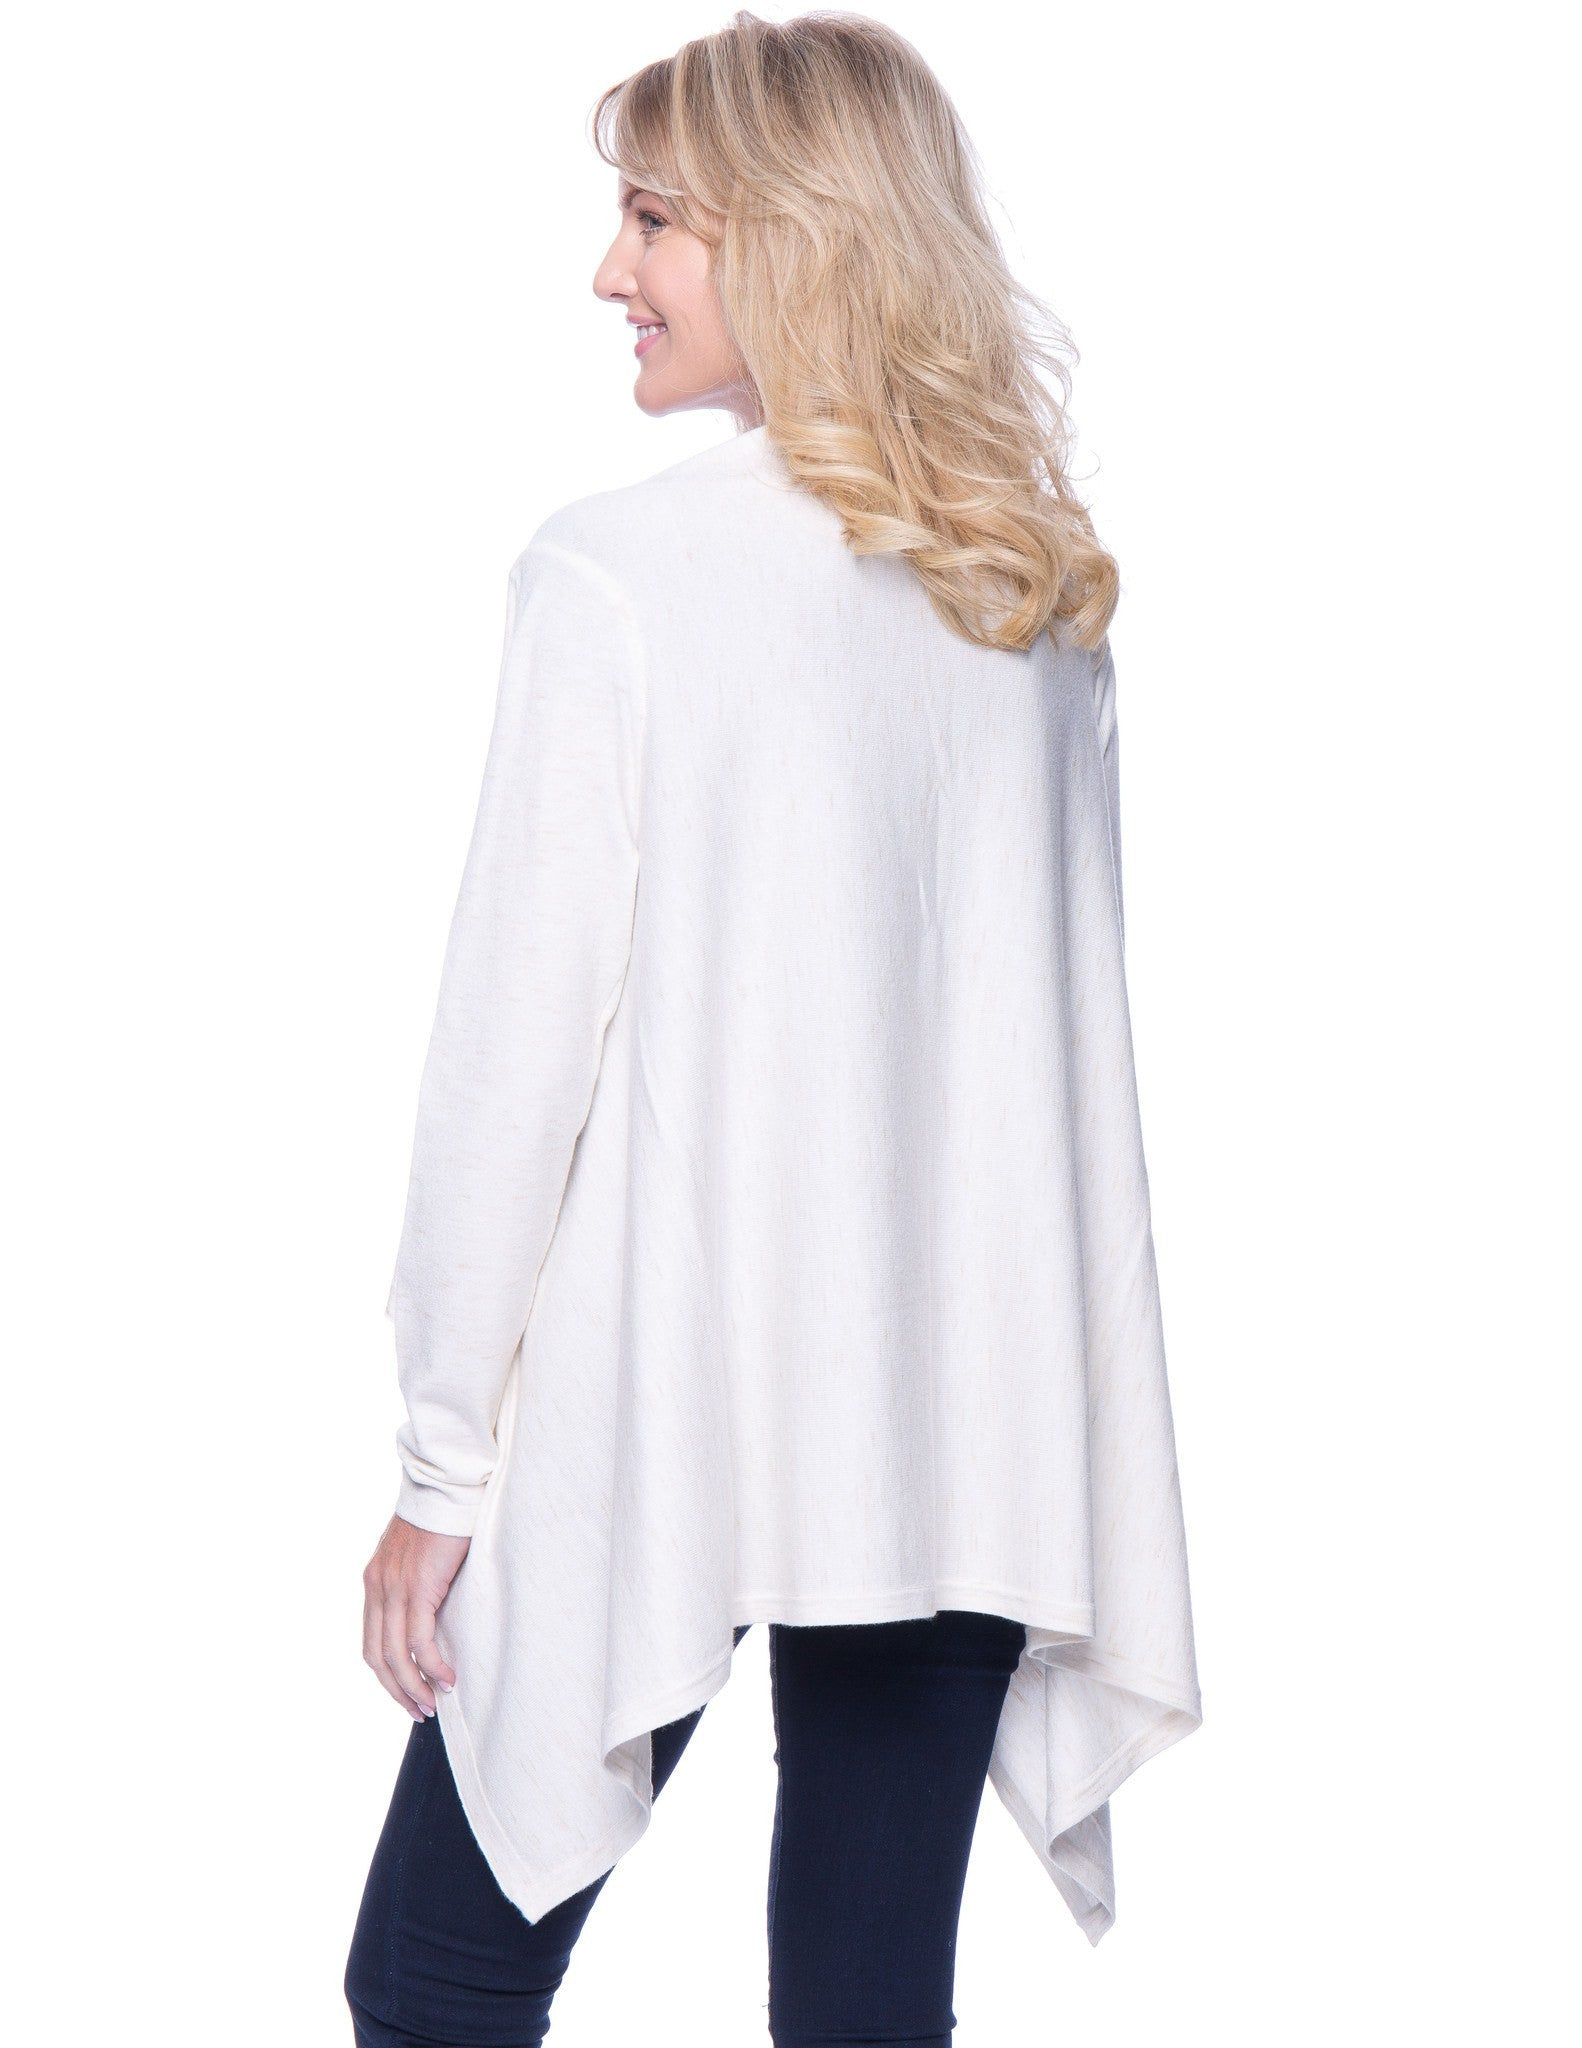 Tocco Reale Women's Space Dyed Open Cardigan Sweater - Oatmeal